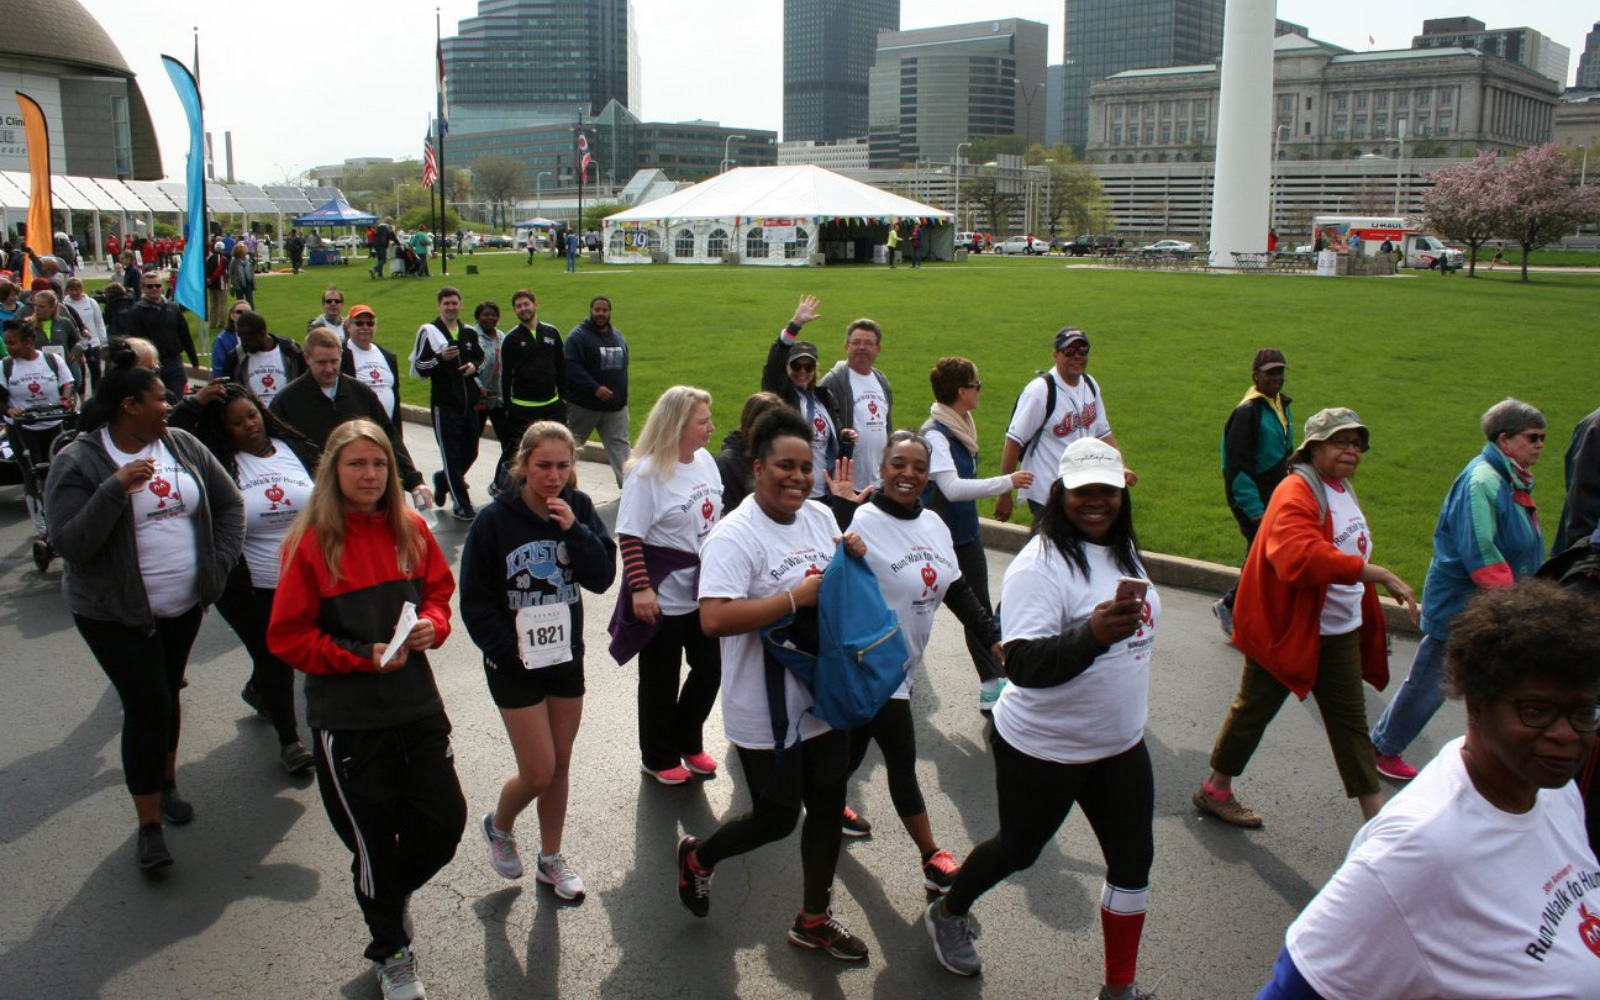 Hunger Network of Greater Cleveland's 33rd Annual Walk for Hunger & 5K Run